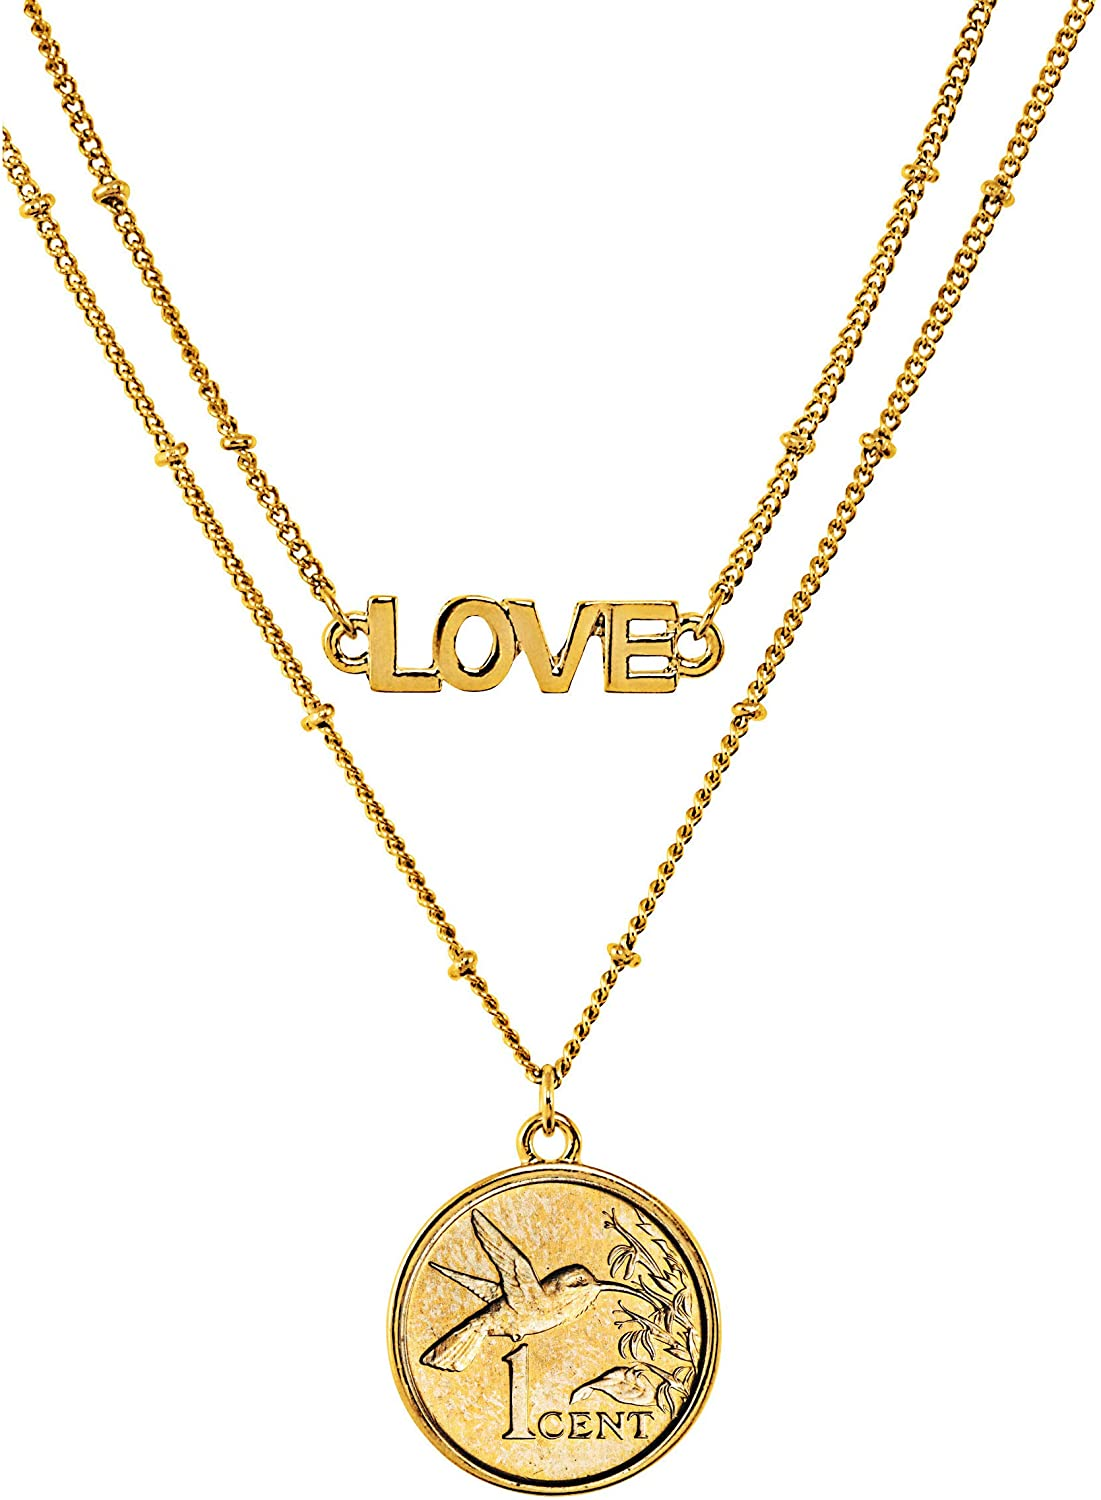 American Coin Treasures Hummingbird Coin Necklace Pendant Double Strand Love Chain– Genuine Gold-Layered Coin | Goldtone Saturn Style Chain and Lobster Claw Clasp | Certificate of Authenticity